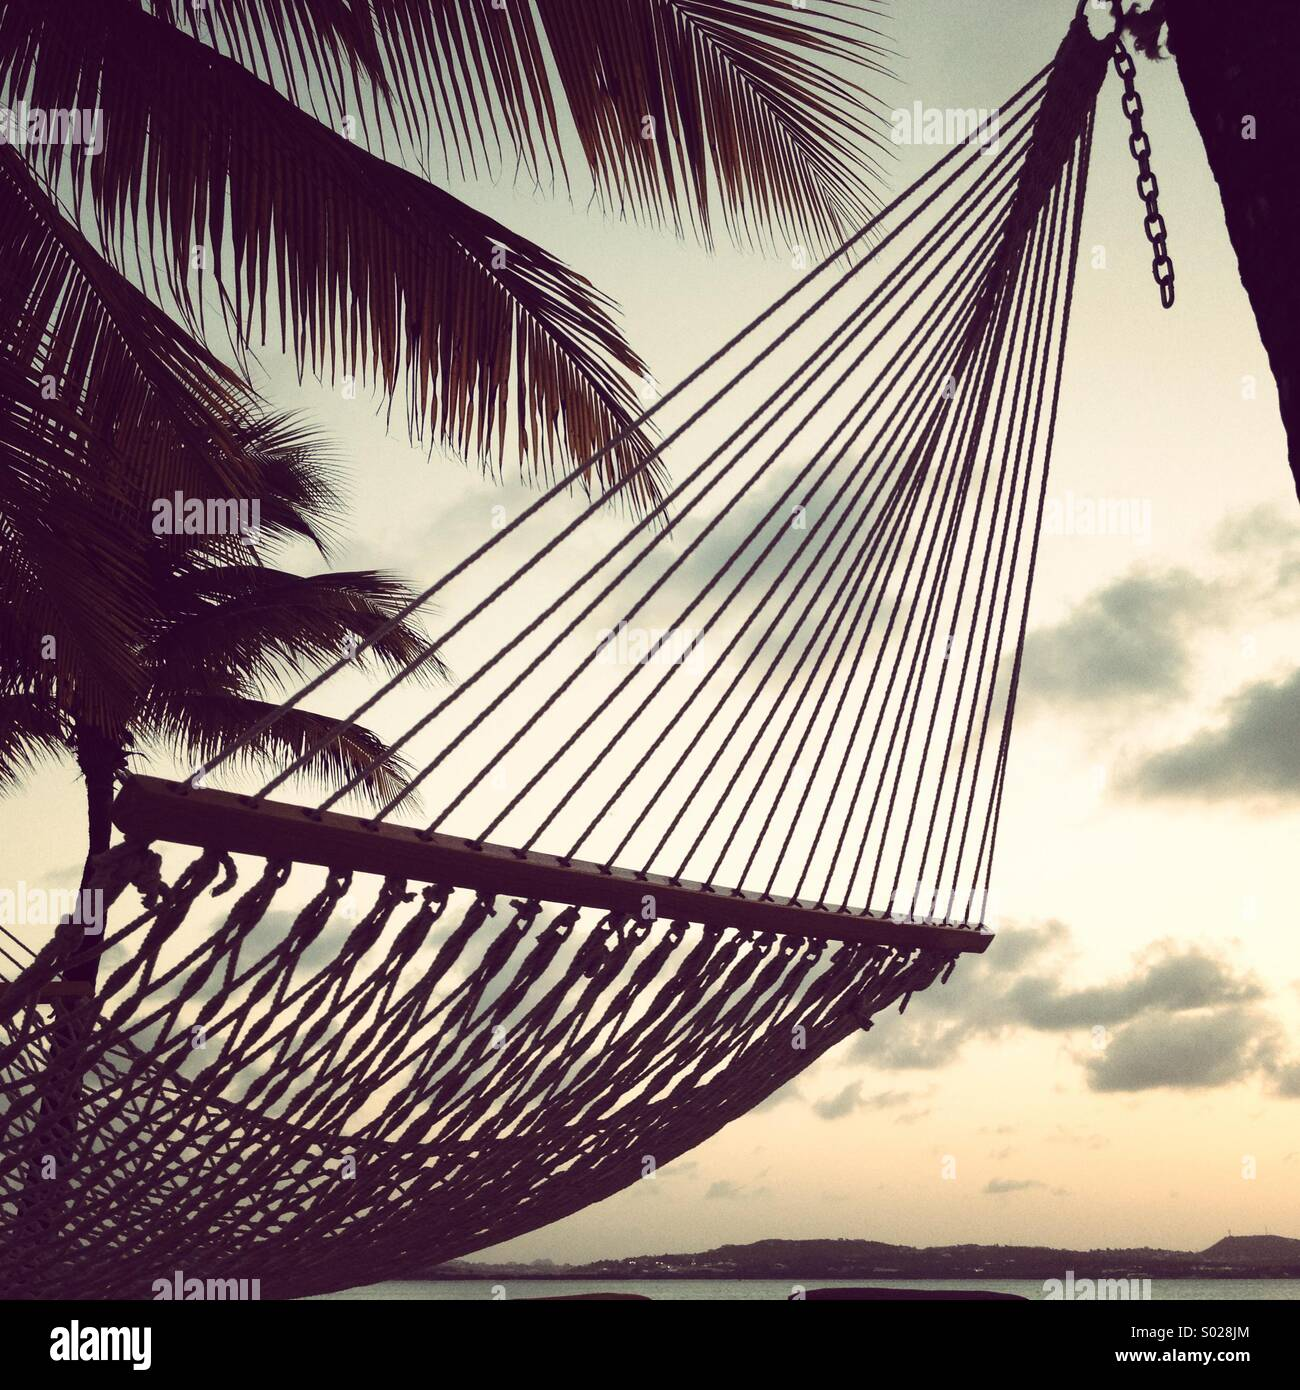 Hammock on beach, at sunset, with palm trees. Stock Photo